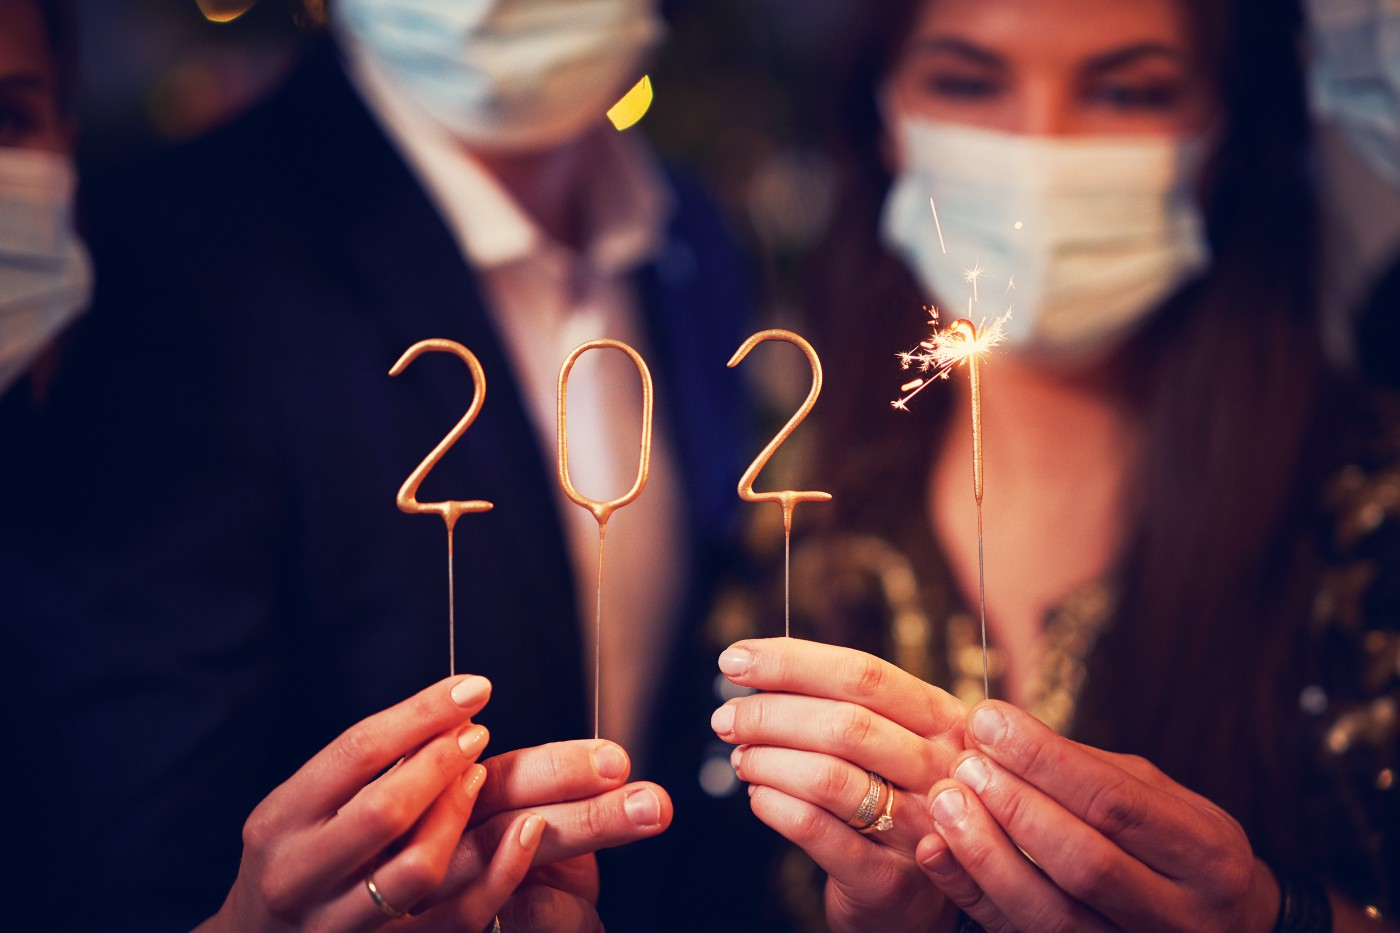 Two people in masks holding 2021 candles and a sparkler.